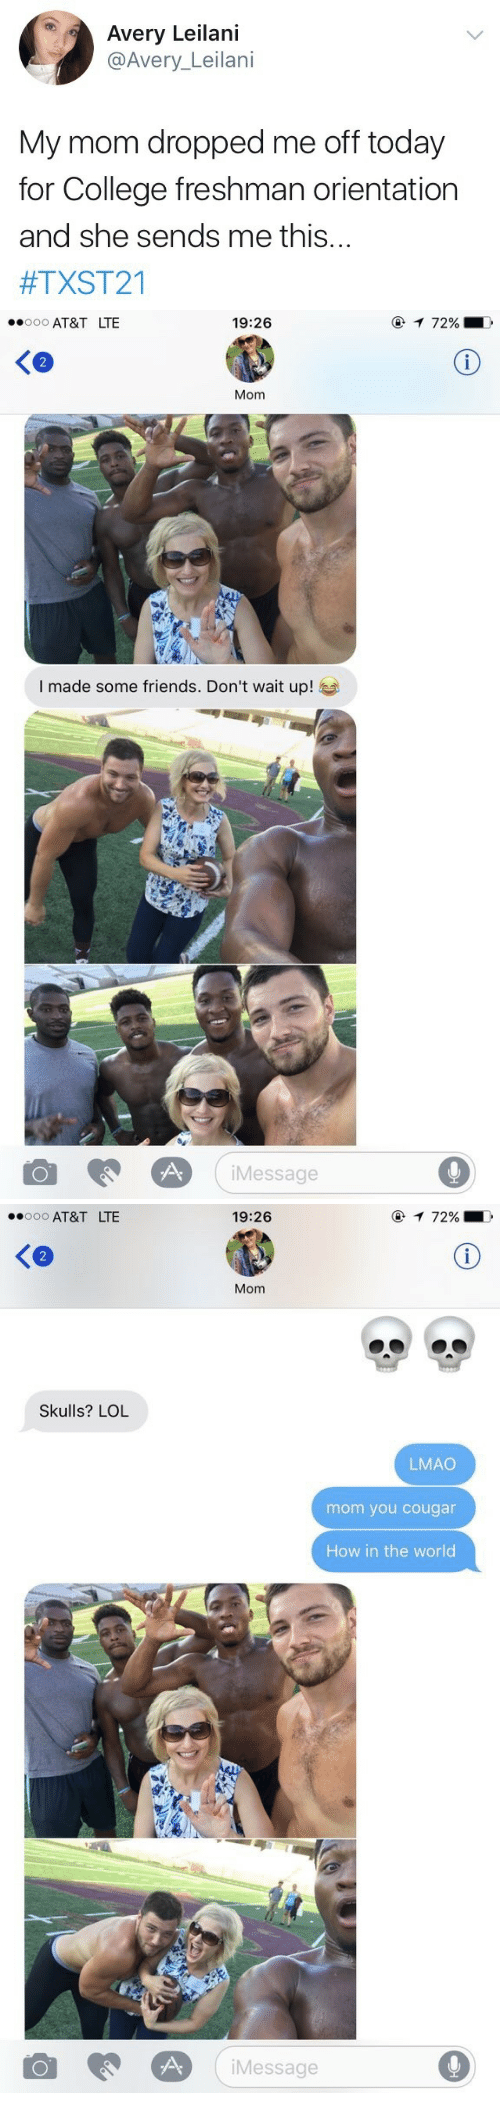 cougar: Avery Leilani  @Avery_Leilani  My mom dropped me off today  for College freshman orientation  and she sends me this...  #TXST21   AT&T LTE  19:26  2  Mom  I made some friends. Don't wait up!  iMessage  9   AT&T LTE  19:26  Ke  Mom  Skulls? LOL  LMAO  mom you cougar  How in the world  Message  9